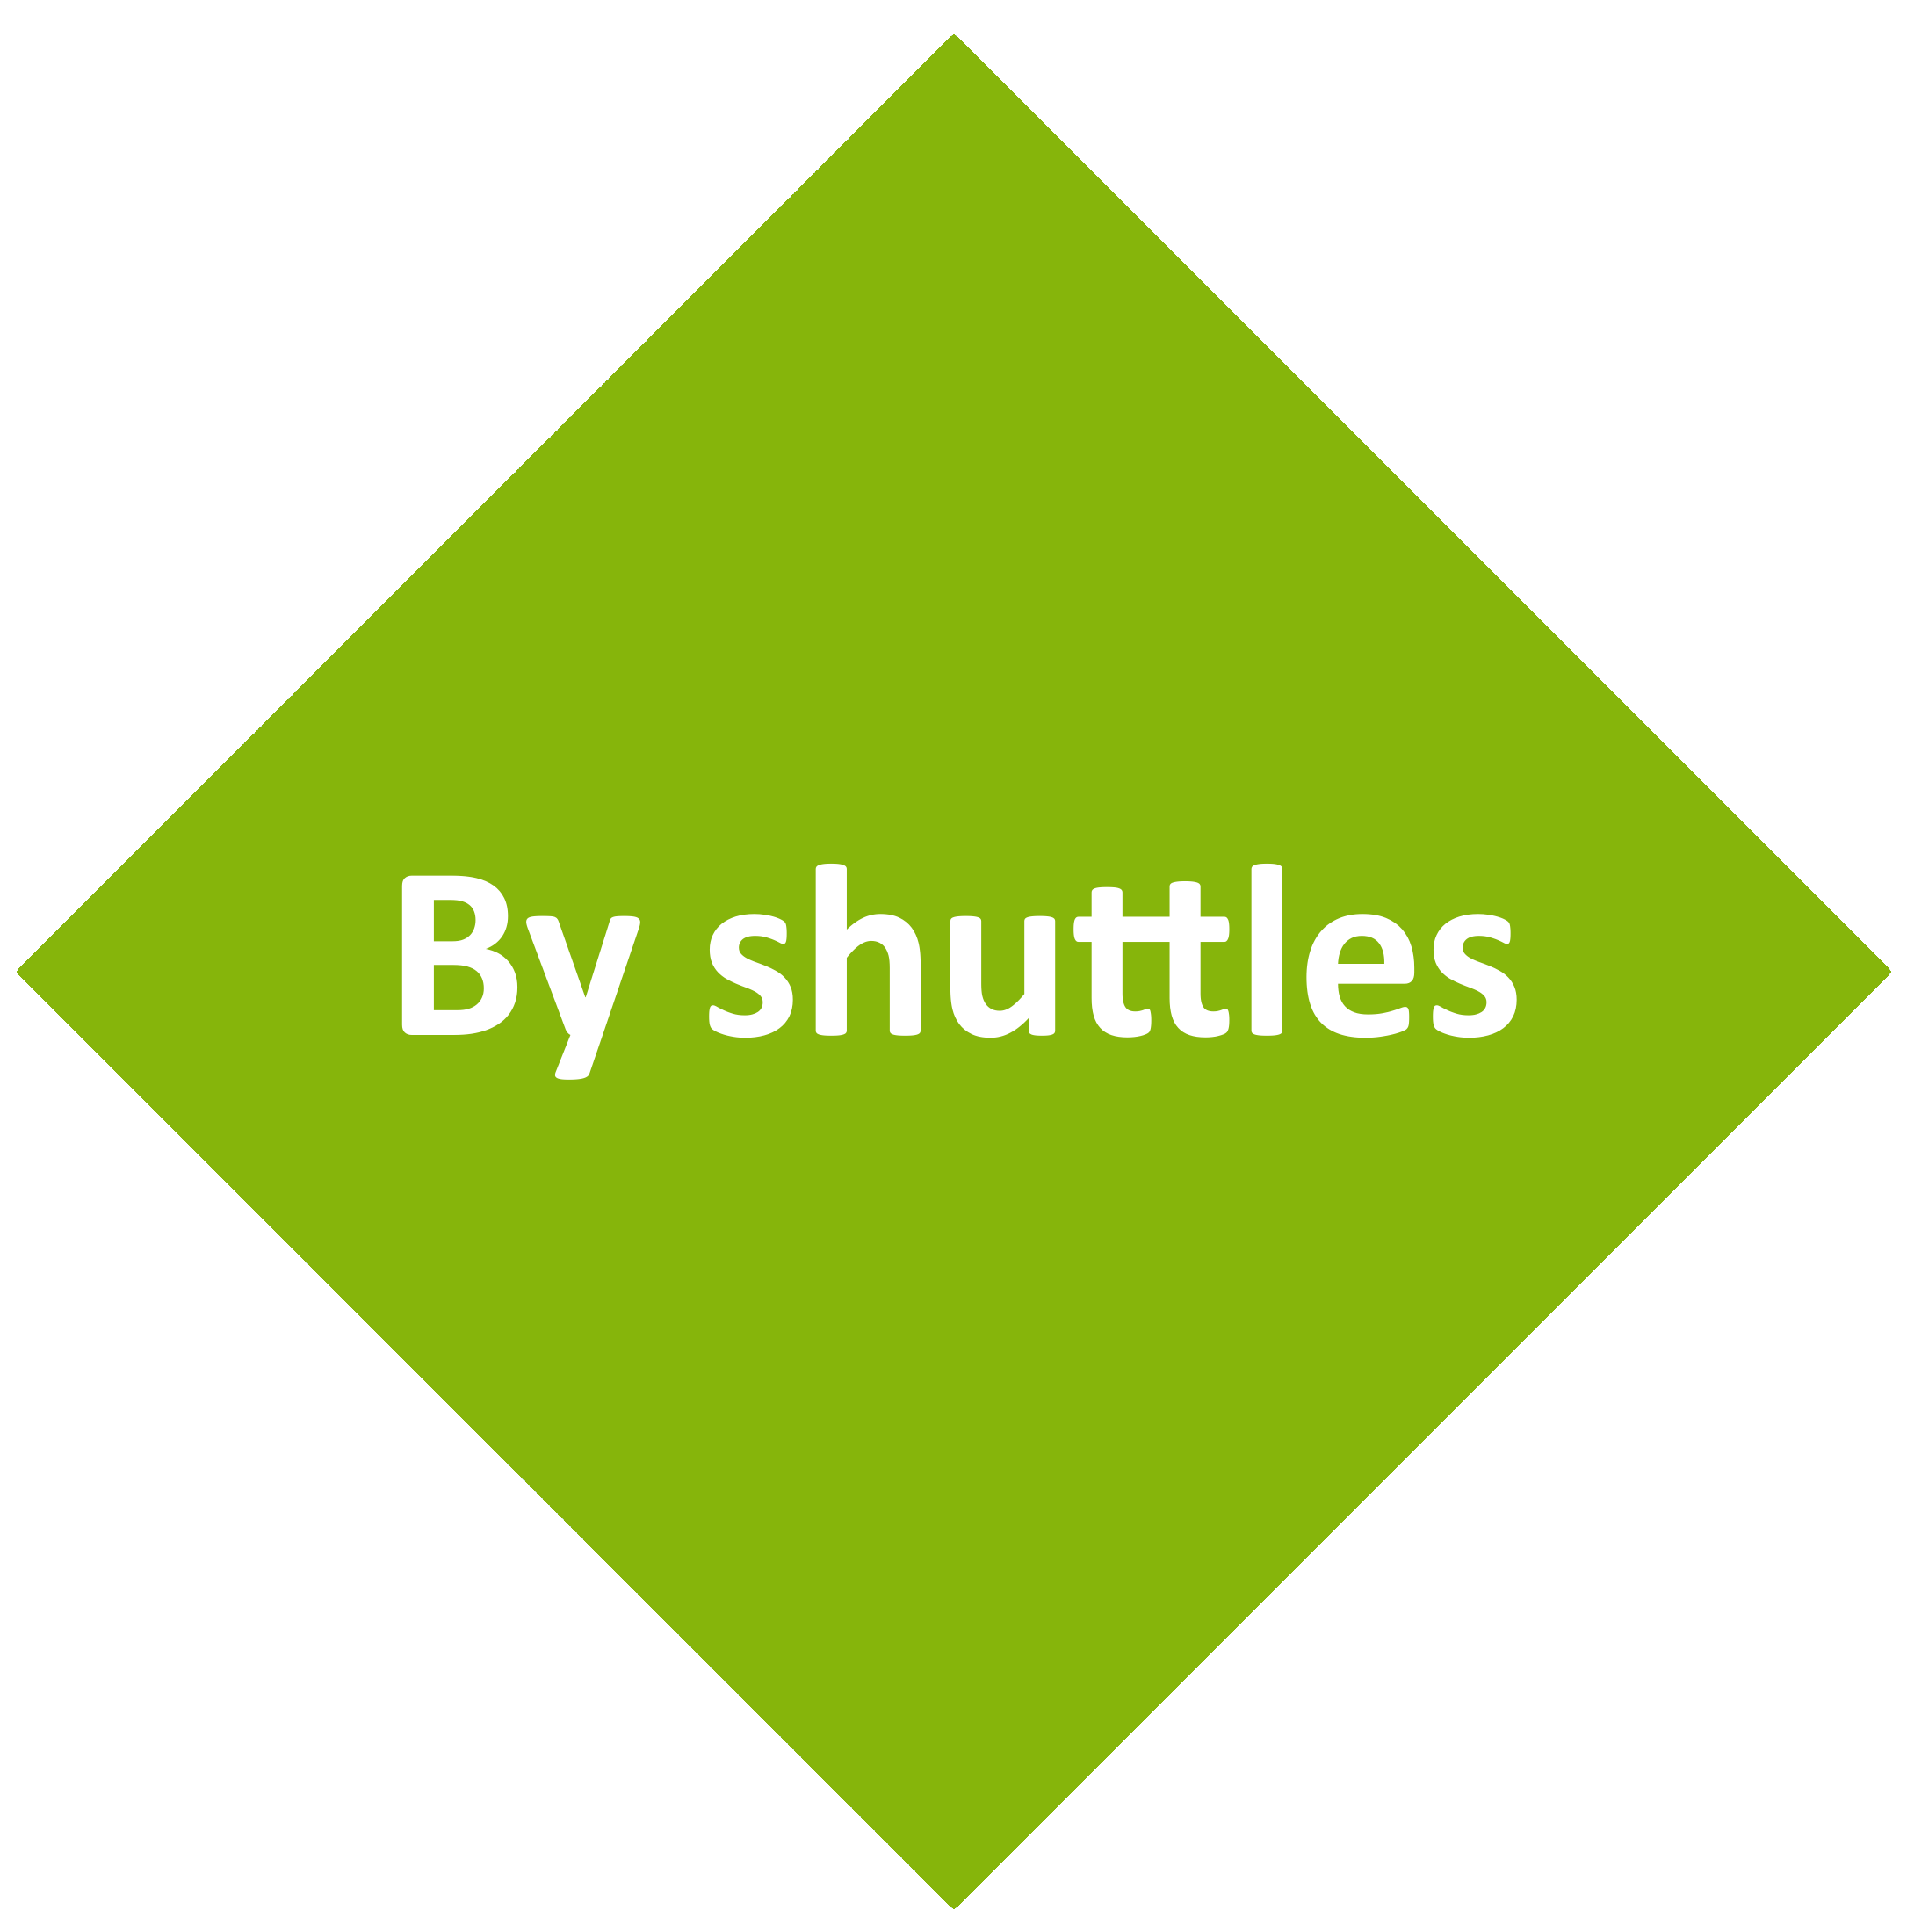 Getting to Rennes by shuttles